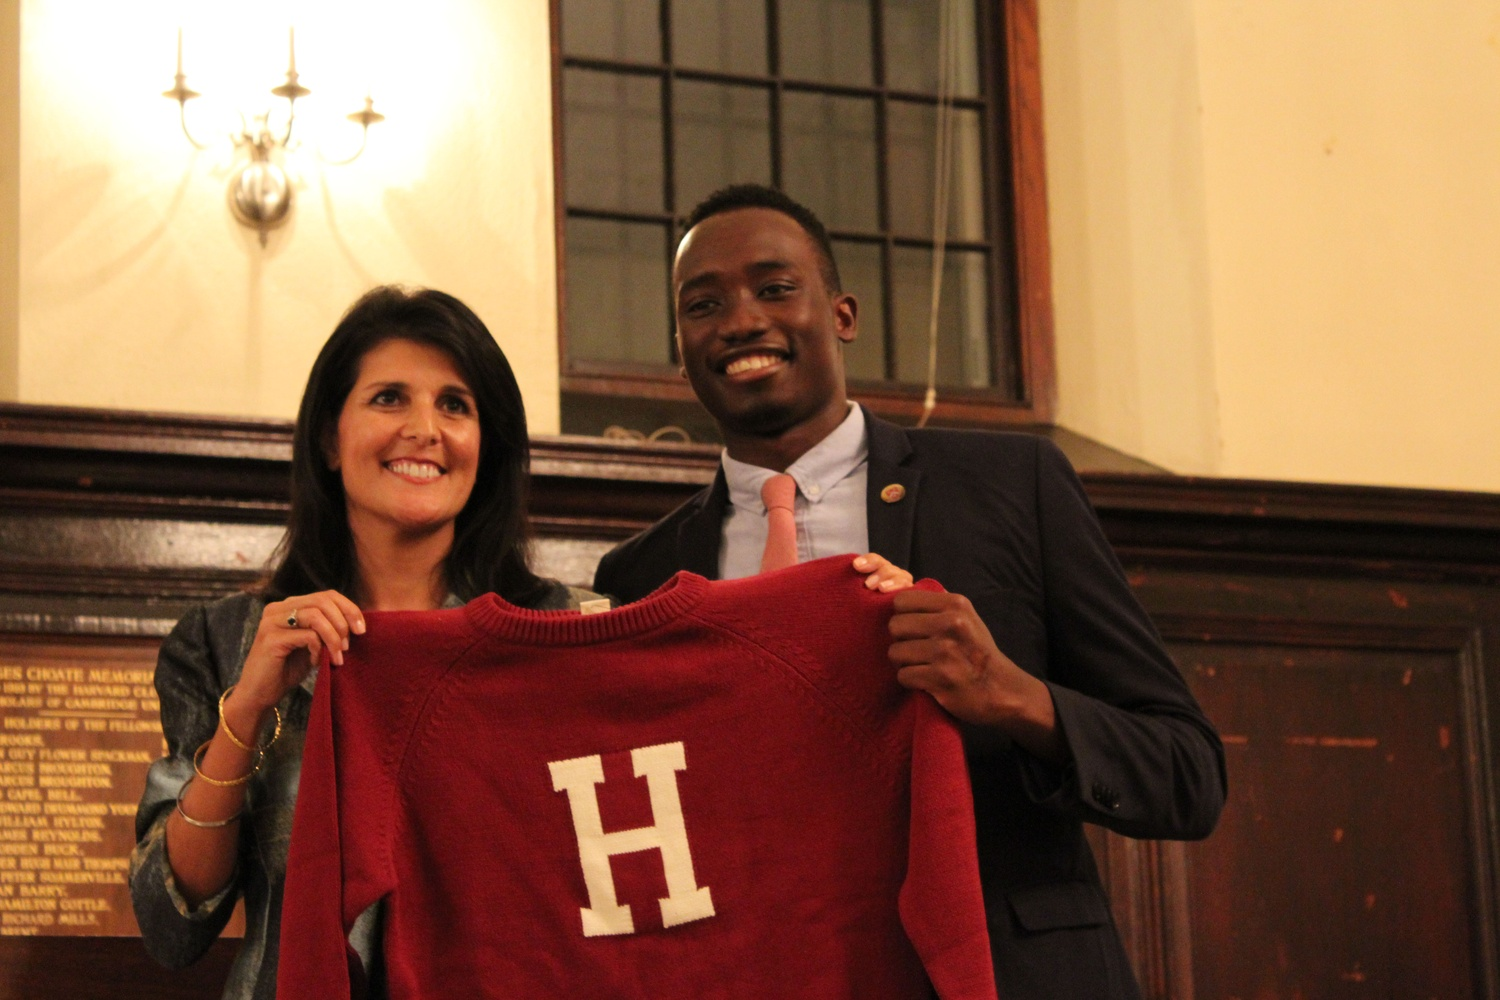 "South Carolina Governor Nikki R. Haley is presented with a Harvard ""letter sweater"" by Harvard Foundation intern Nuha Saho '18 at the conclusion of the dinner event where she was invited to make remarks Thursday night. Haley spoke with pride about the idea of a ""New South"" that promoted racial and economic equality and defended the Republican Party from accusations of racism and intolerance."